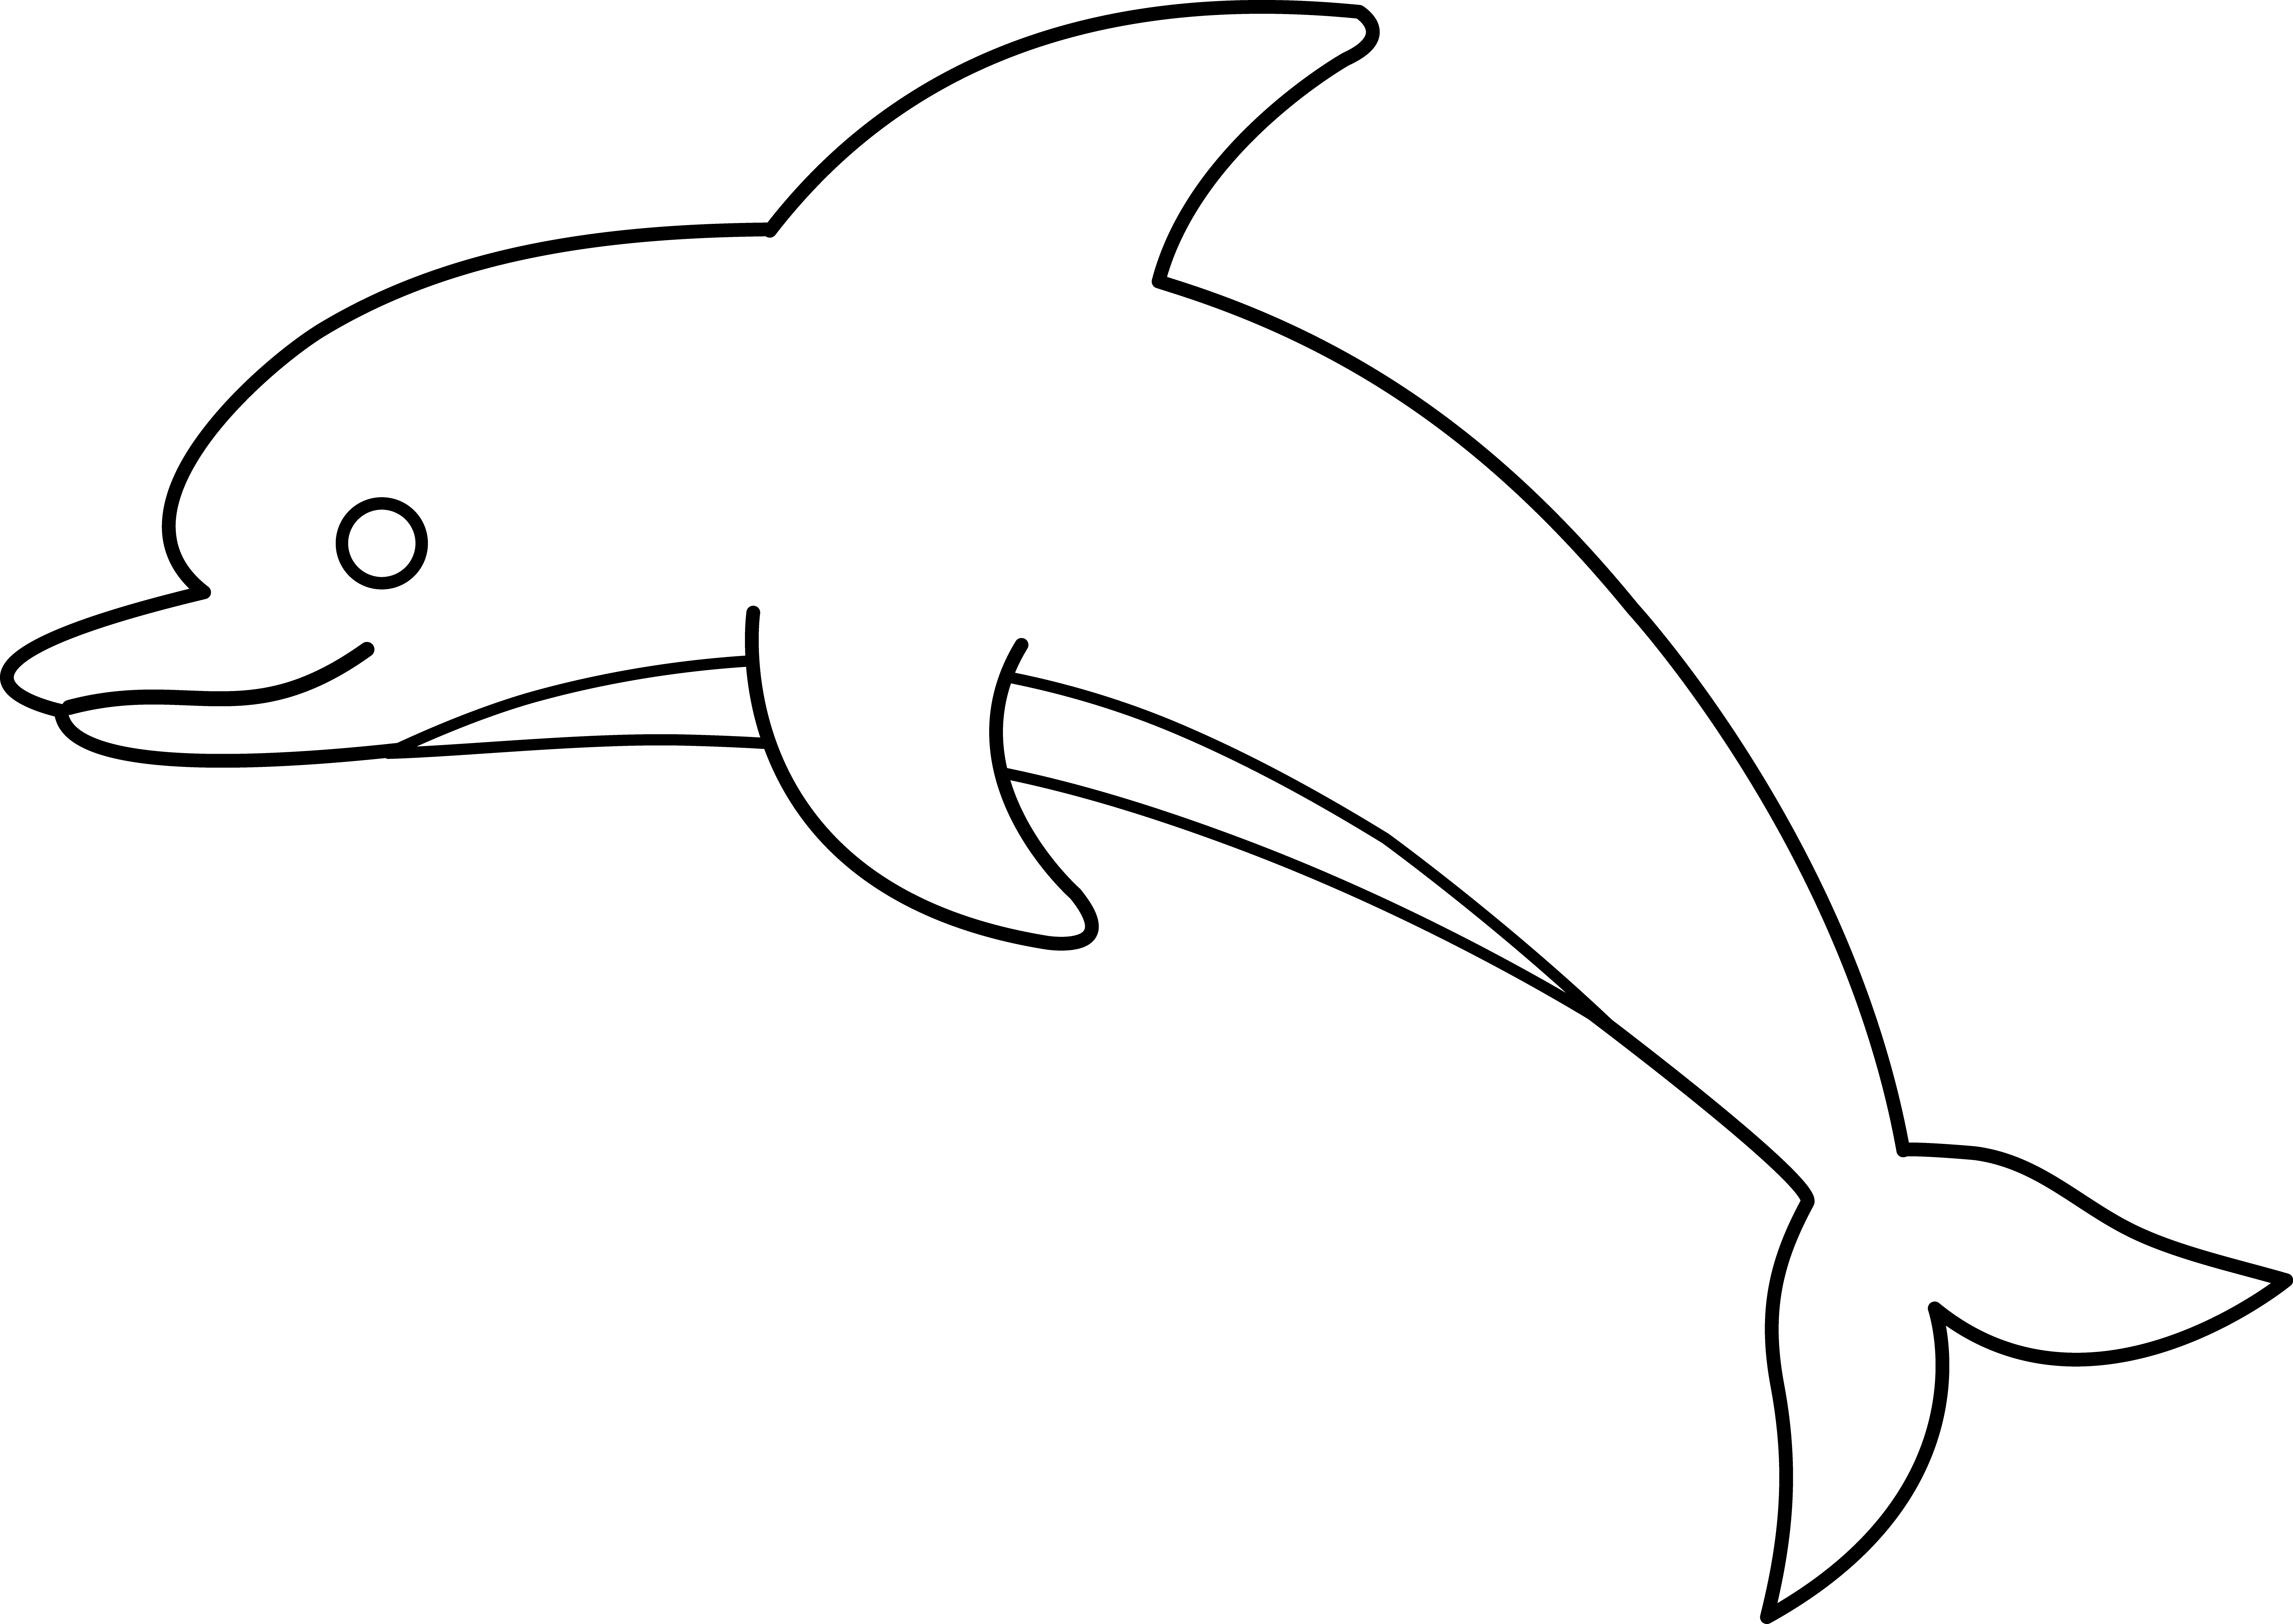 Dolphins clipart realistic. Jumping dolphin outline czgrdgce